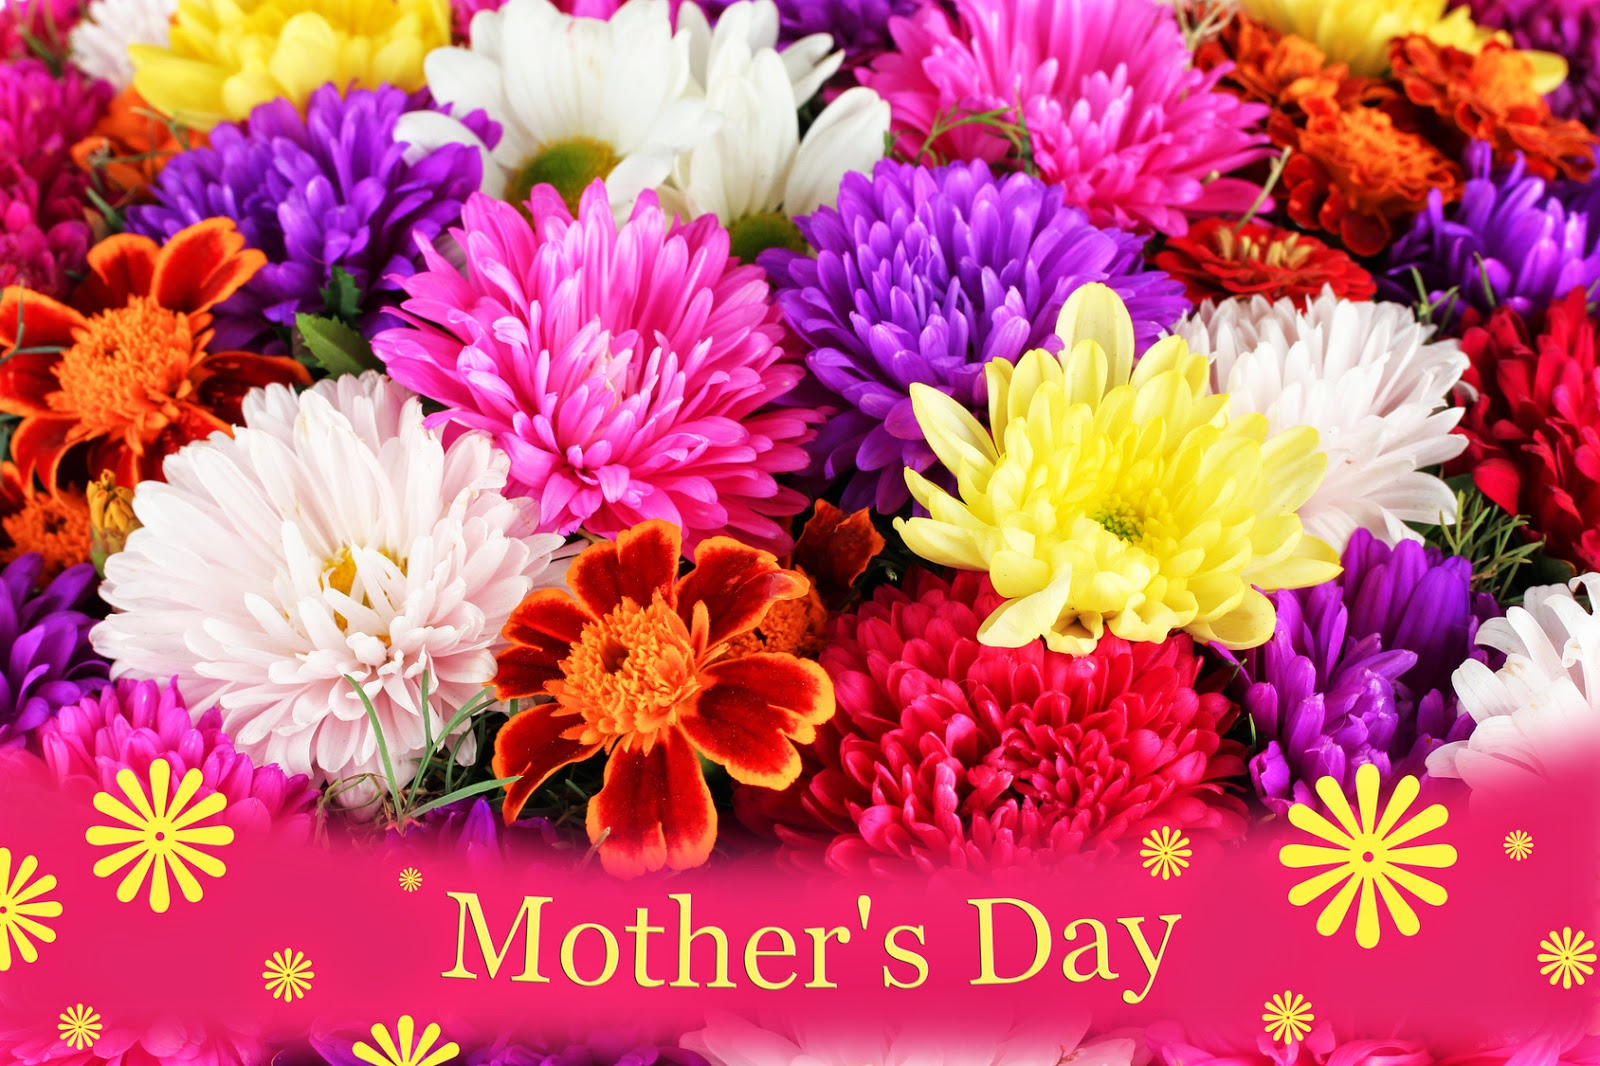 Send Mothers Day 2016 Gifts Flowers Cards Greetings